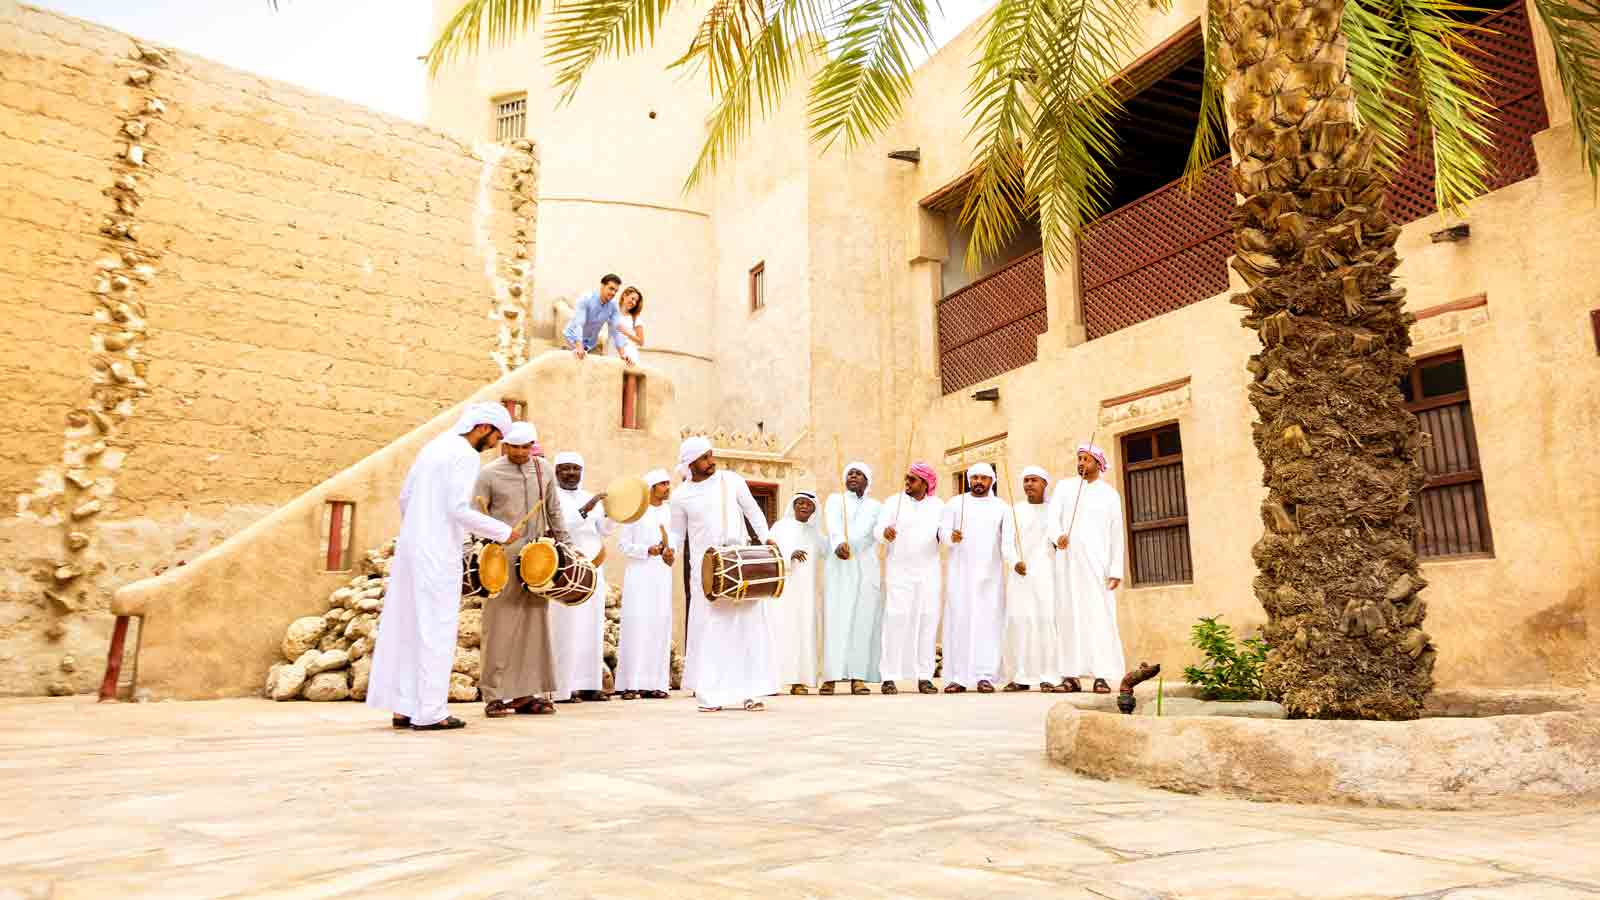 Emirati men dancing in Ajman Museum